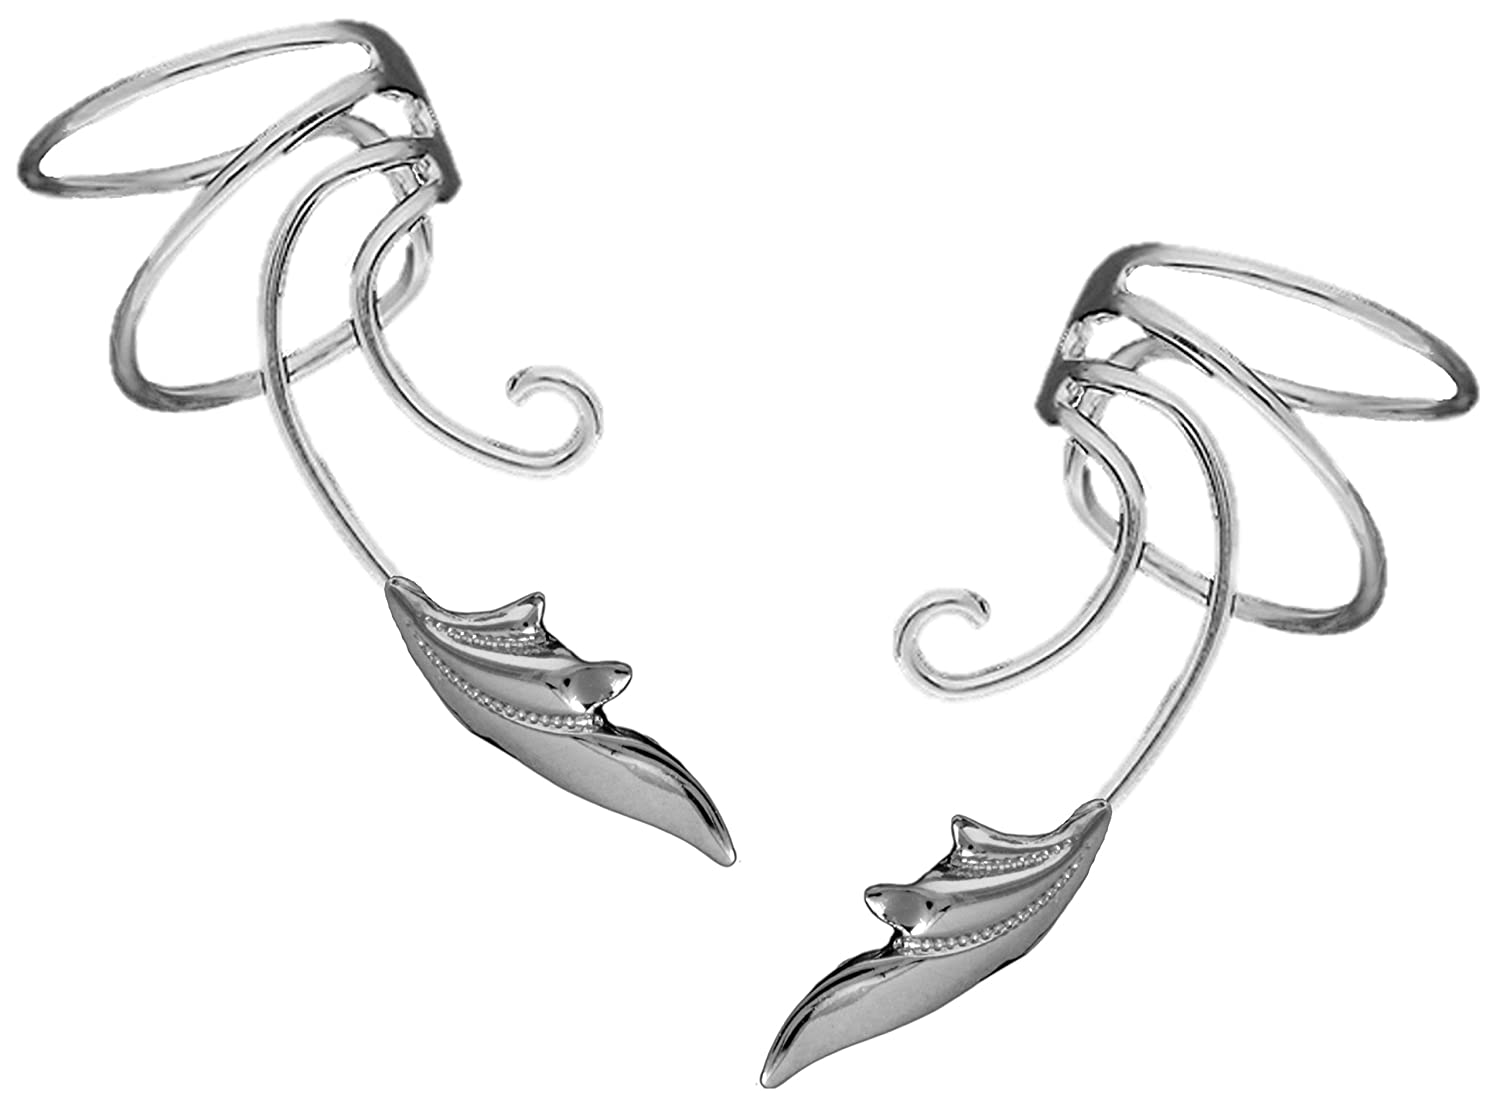 51e2fe54e96 Delicate Leaf Curly Wave Ear Cuff Non-pierced Cartilage Wrap Earring Pair  in Sterling Silver